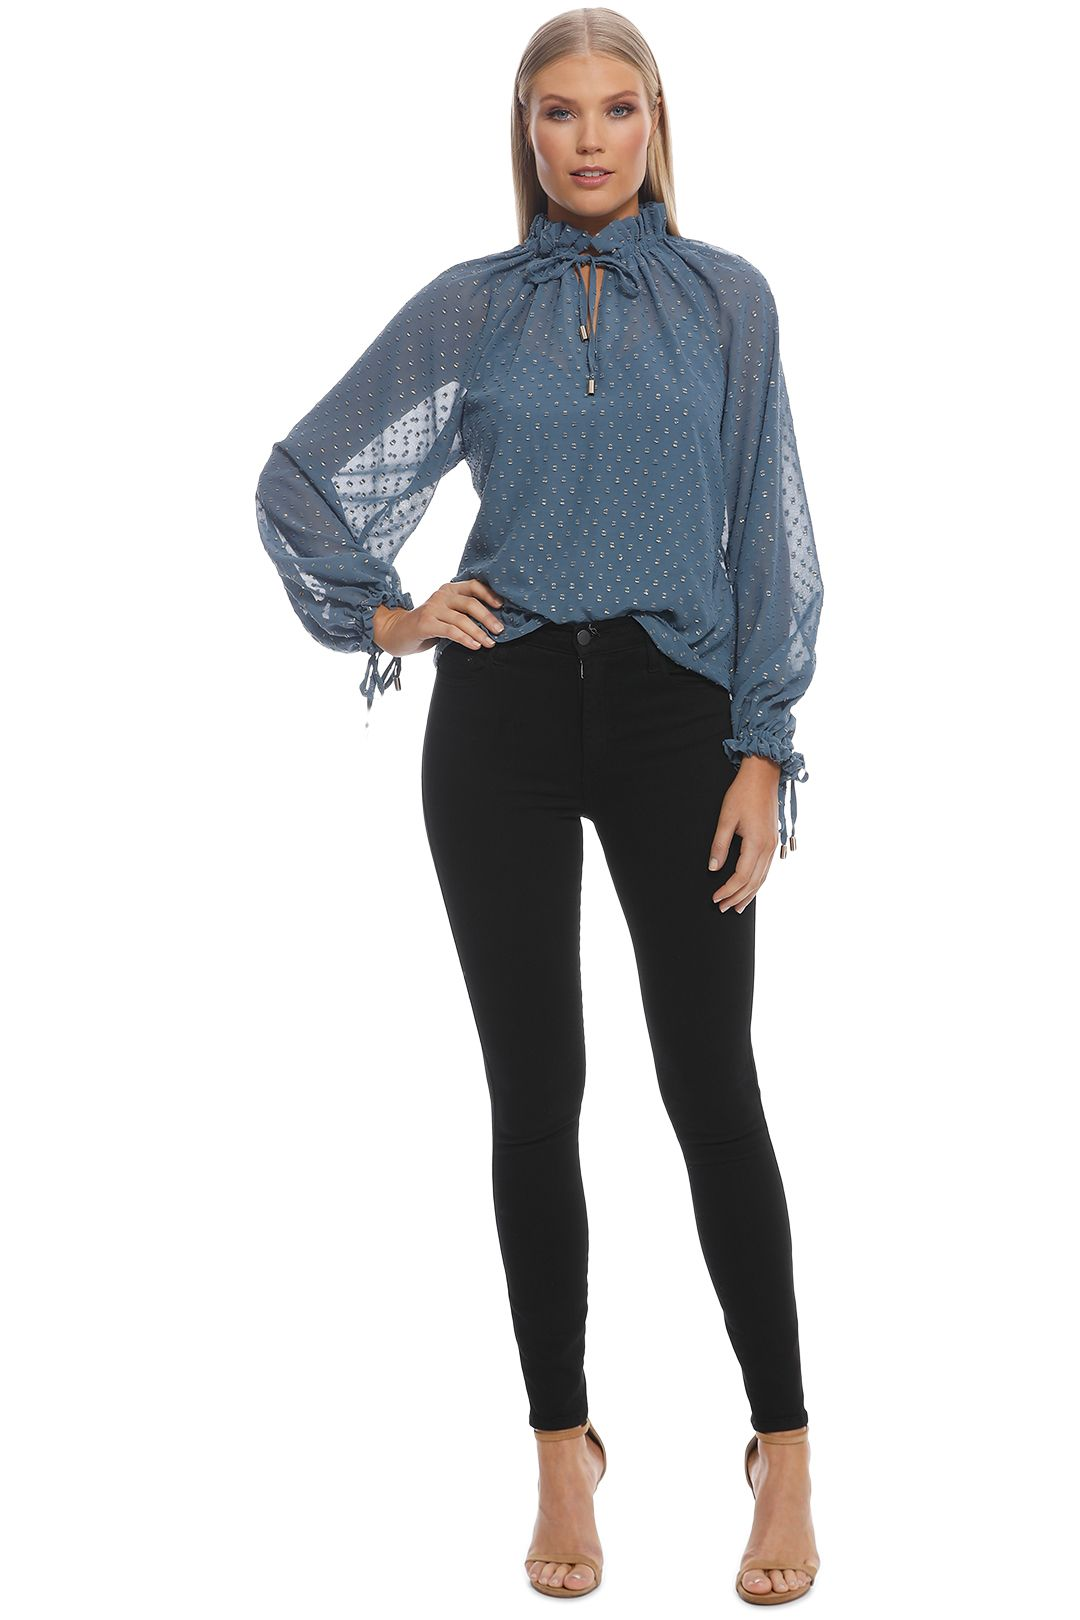 Ministry of Style - Augustine Top - Indigo - Front